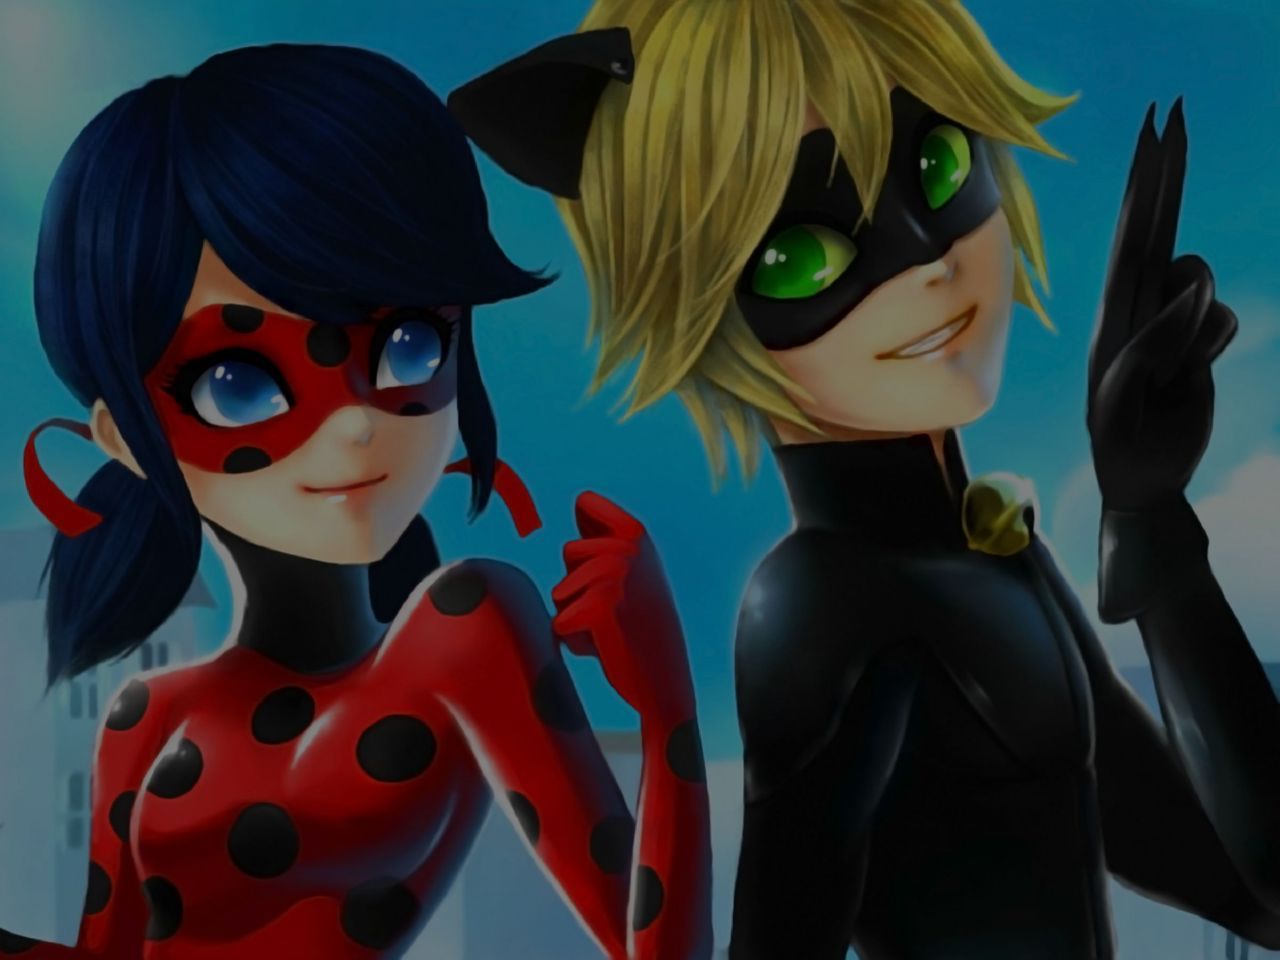 Miraculous Ladybug Cat Noir Hack 2020 - Online Cheat For Unlimited Resources